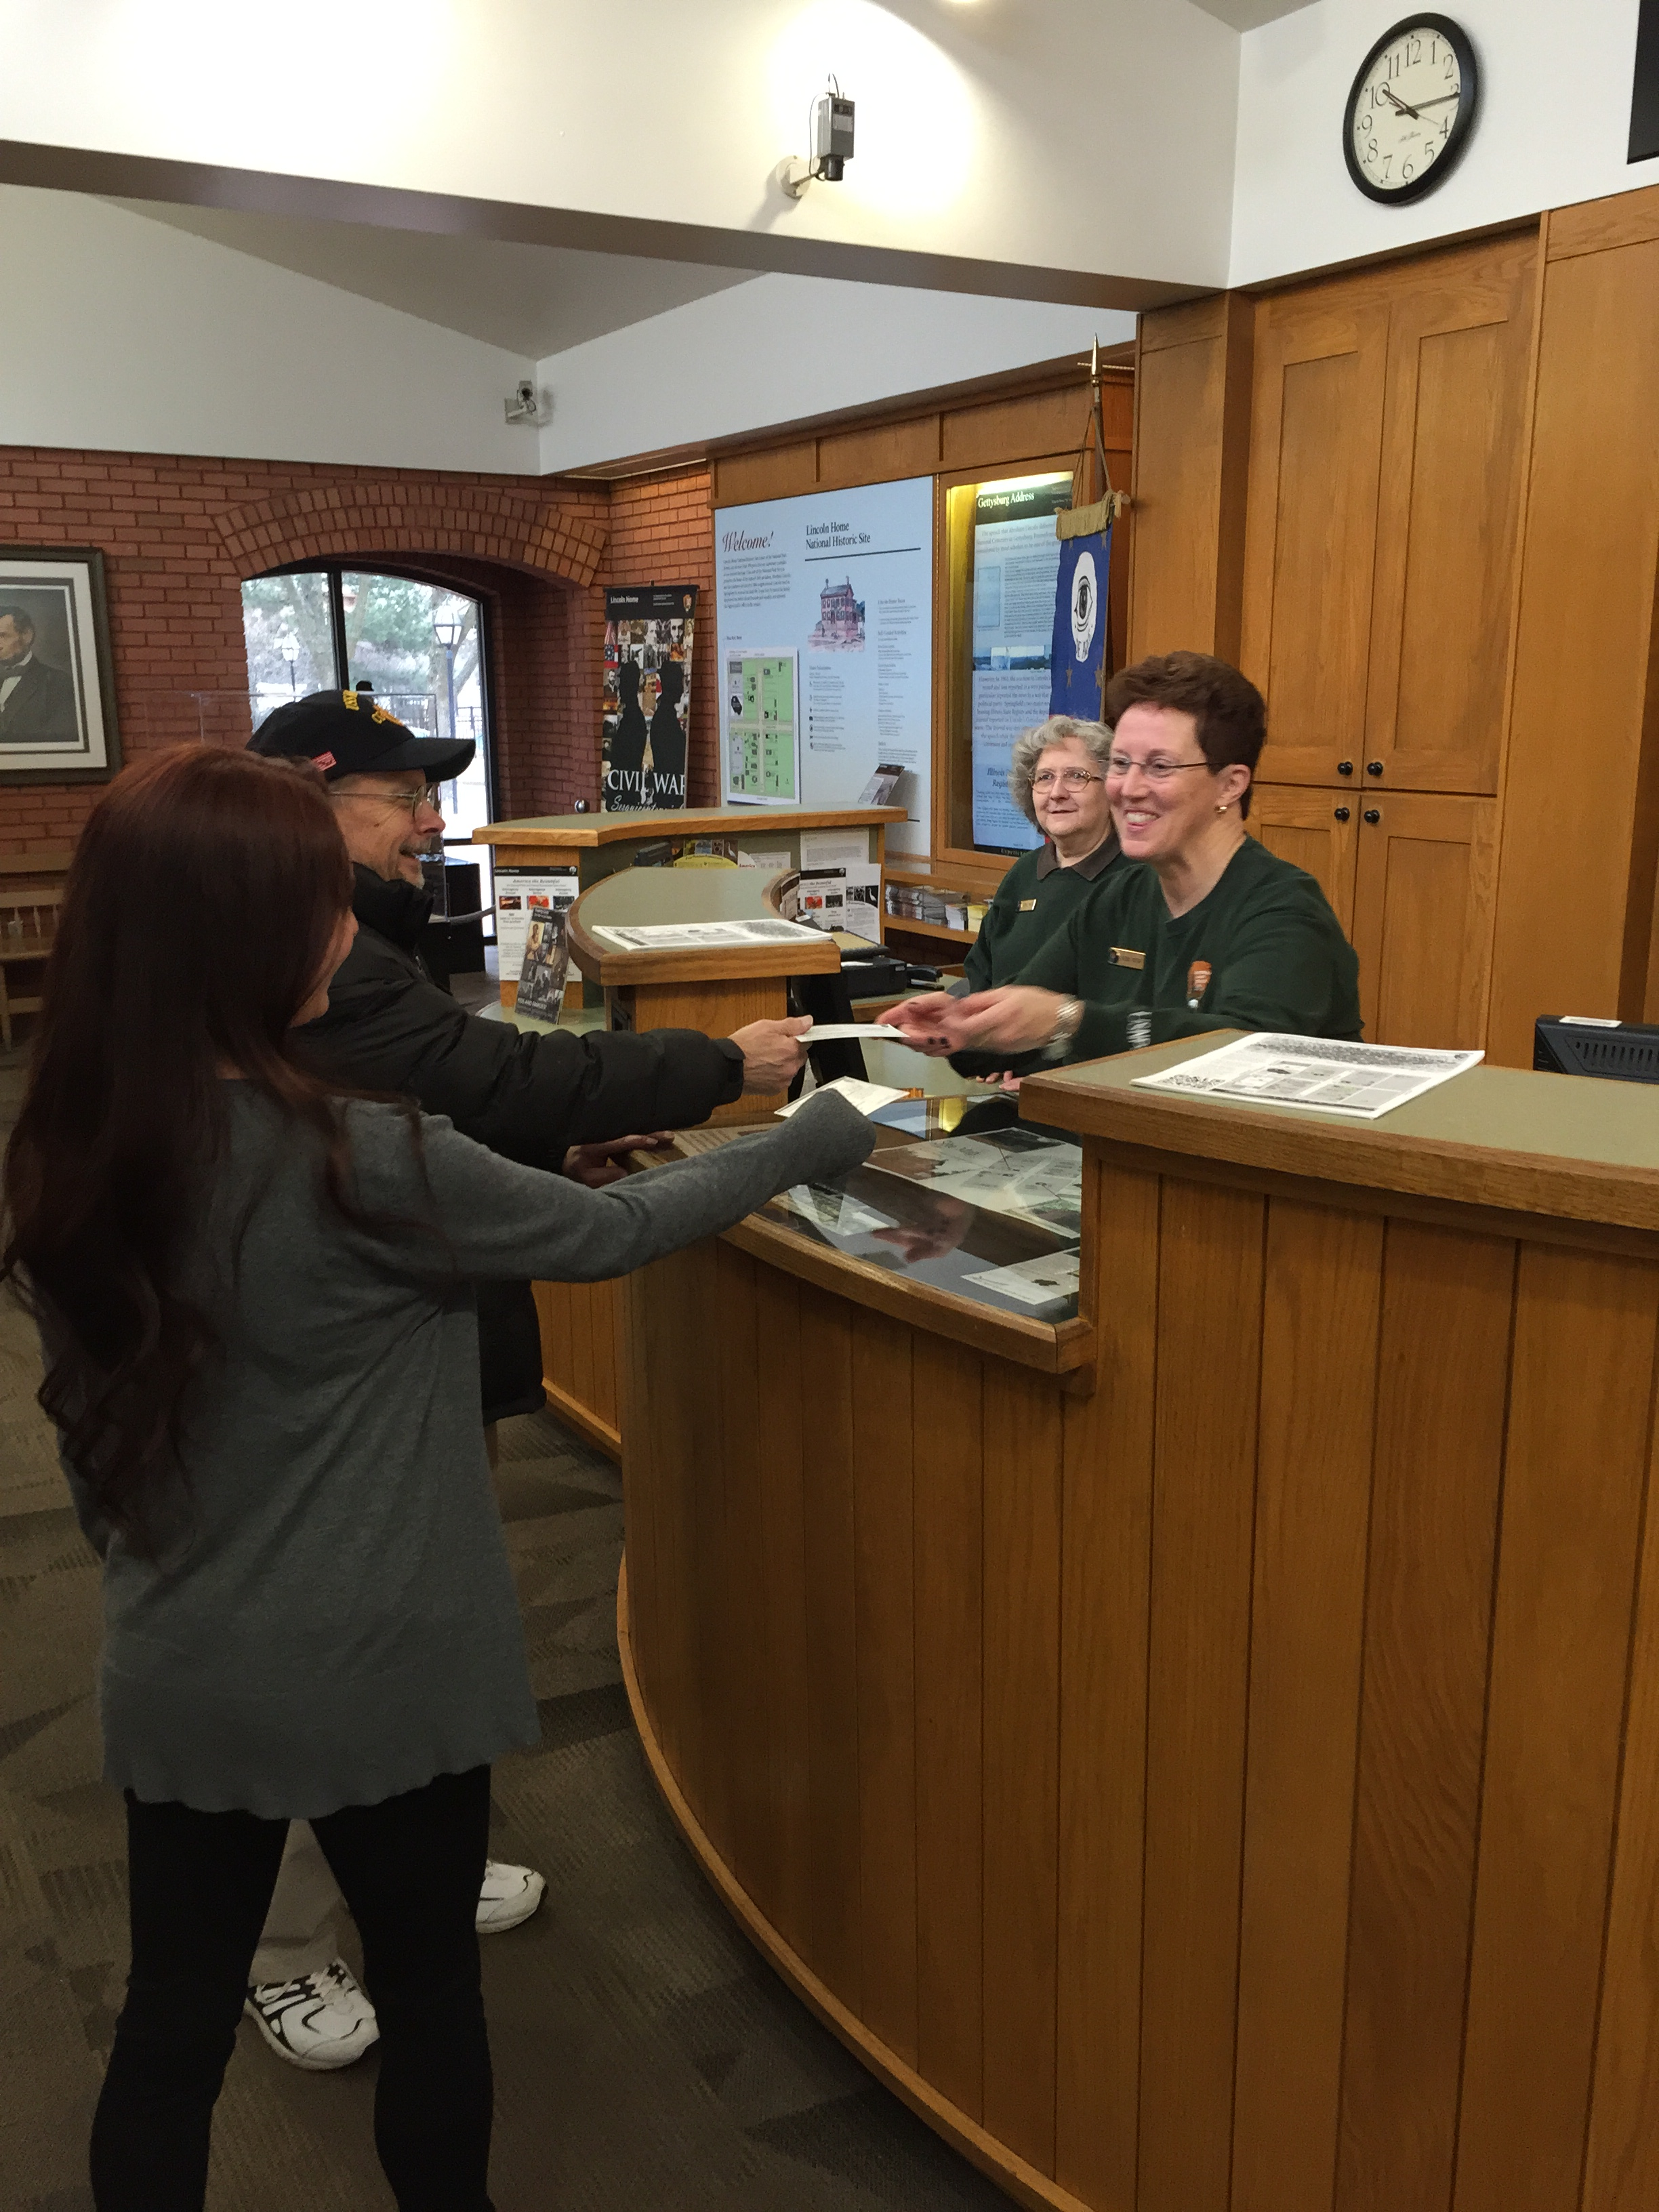 two front desk volunteers interacting with visitors